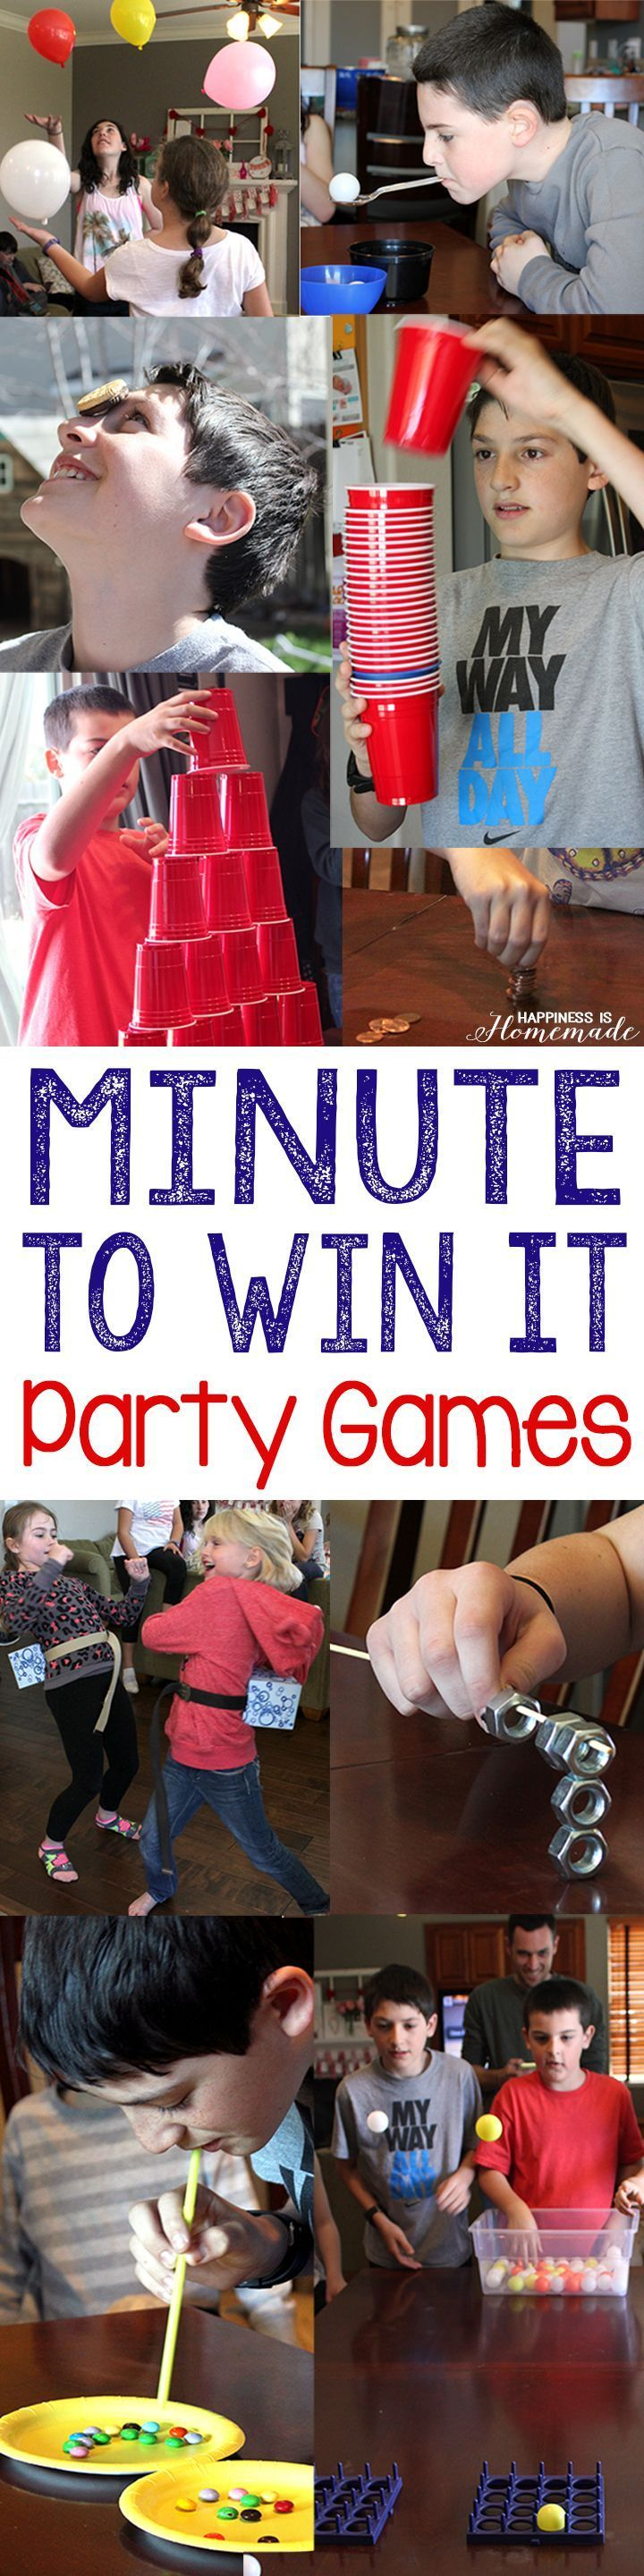 These 10 Minute to Win It games were perfect for all ages (we had guests from ages 4-55 playing these games, and everyone had a